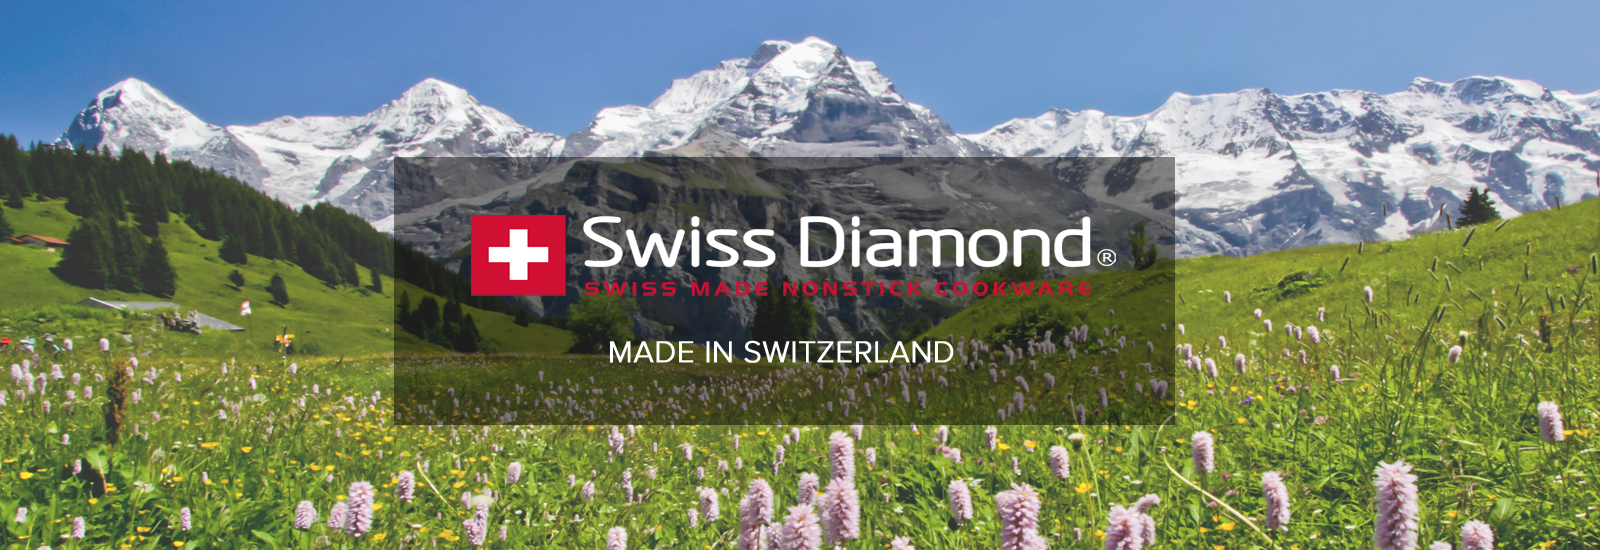 Swiss Diamond Cookware